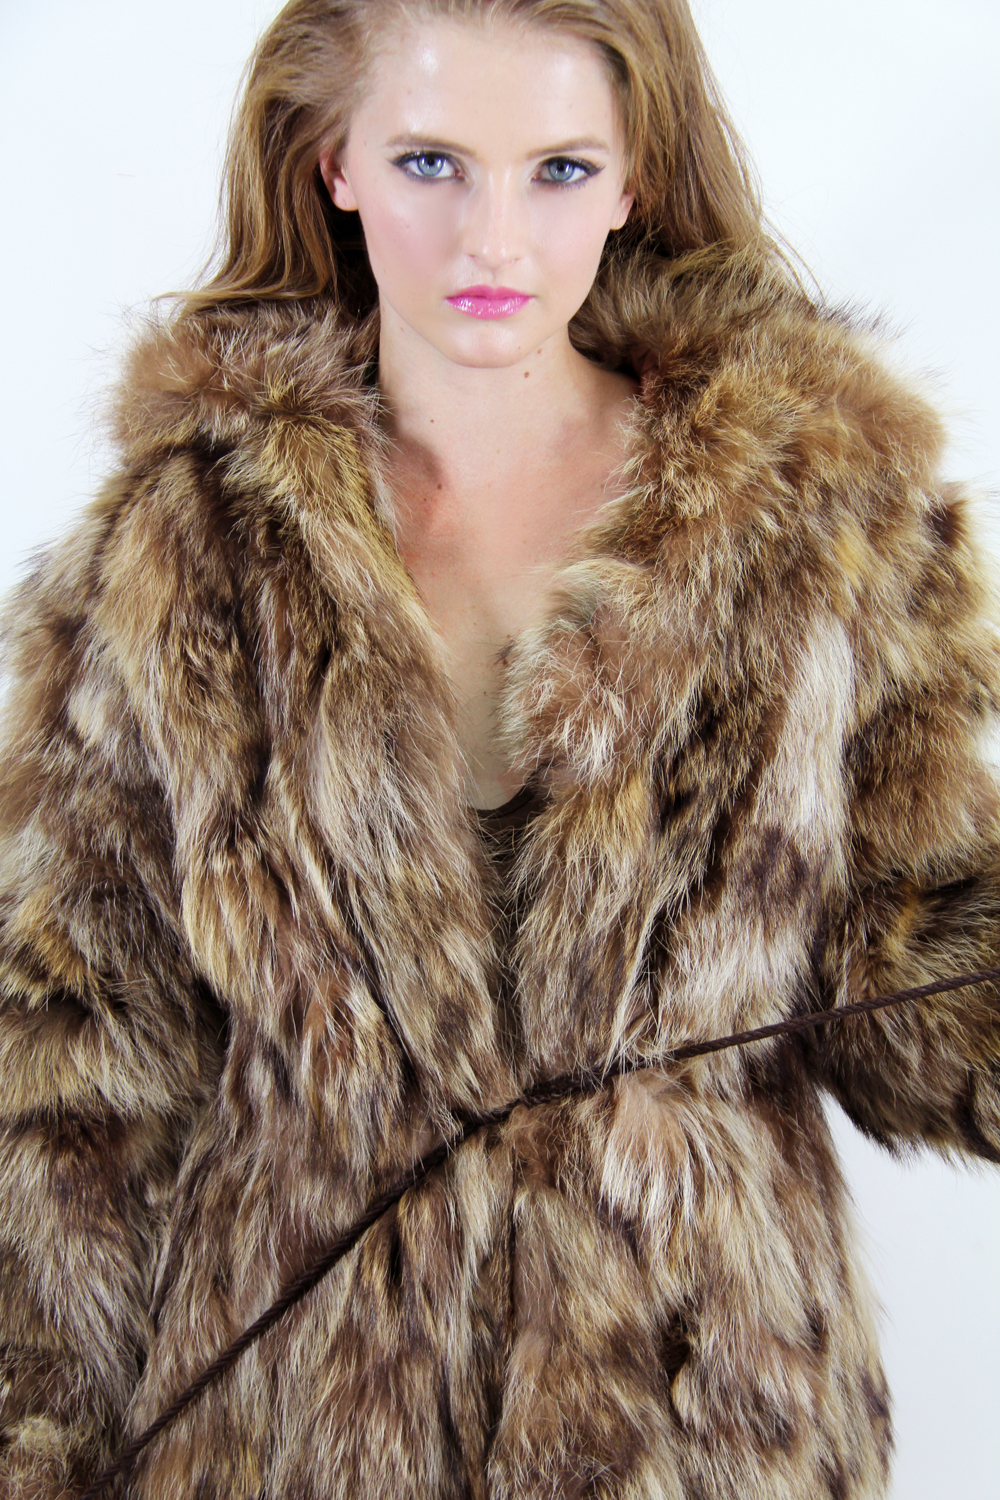 https://www.etsy.com/listing/89106809/vintage-1970s-fox-fur-coat-jacques-saint?ref=listing-shop-header-2